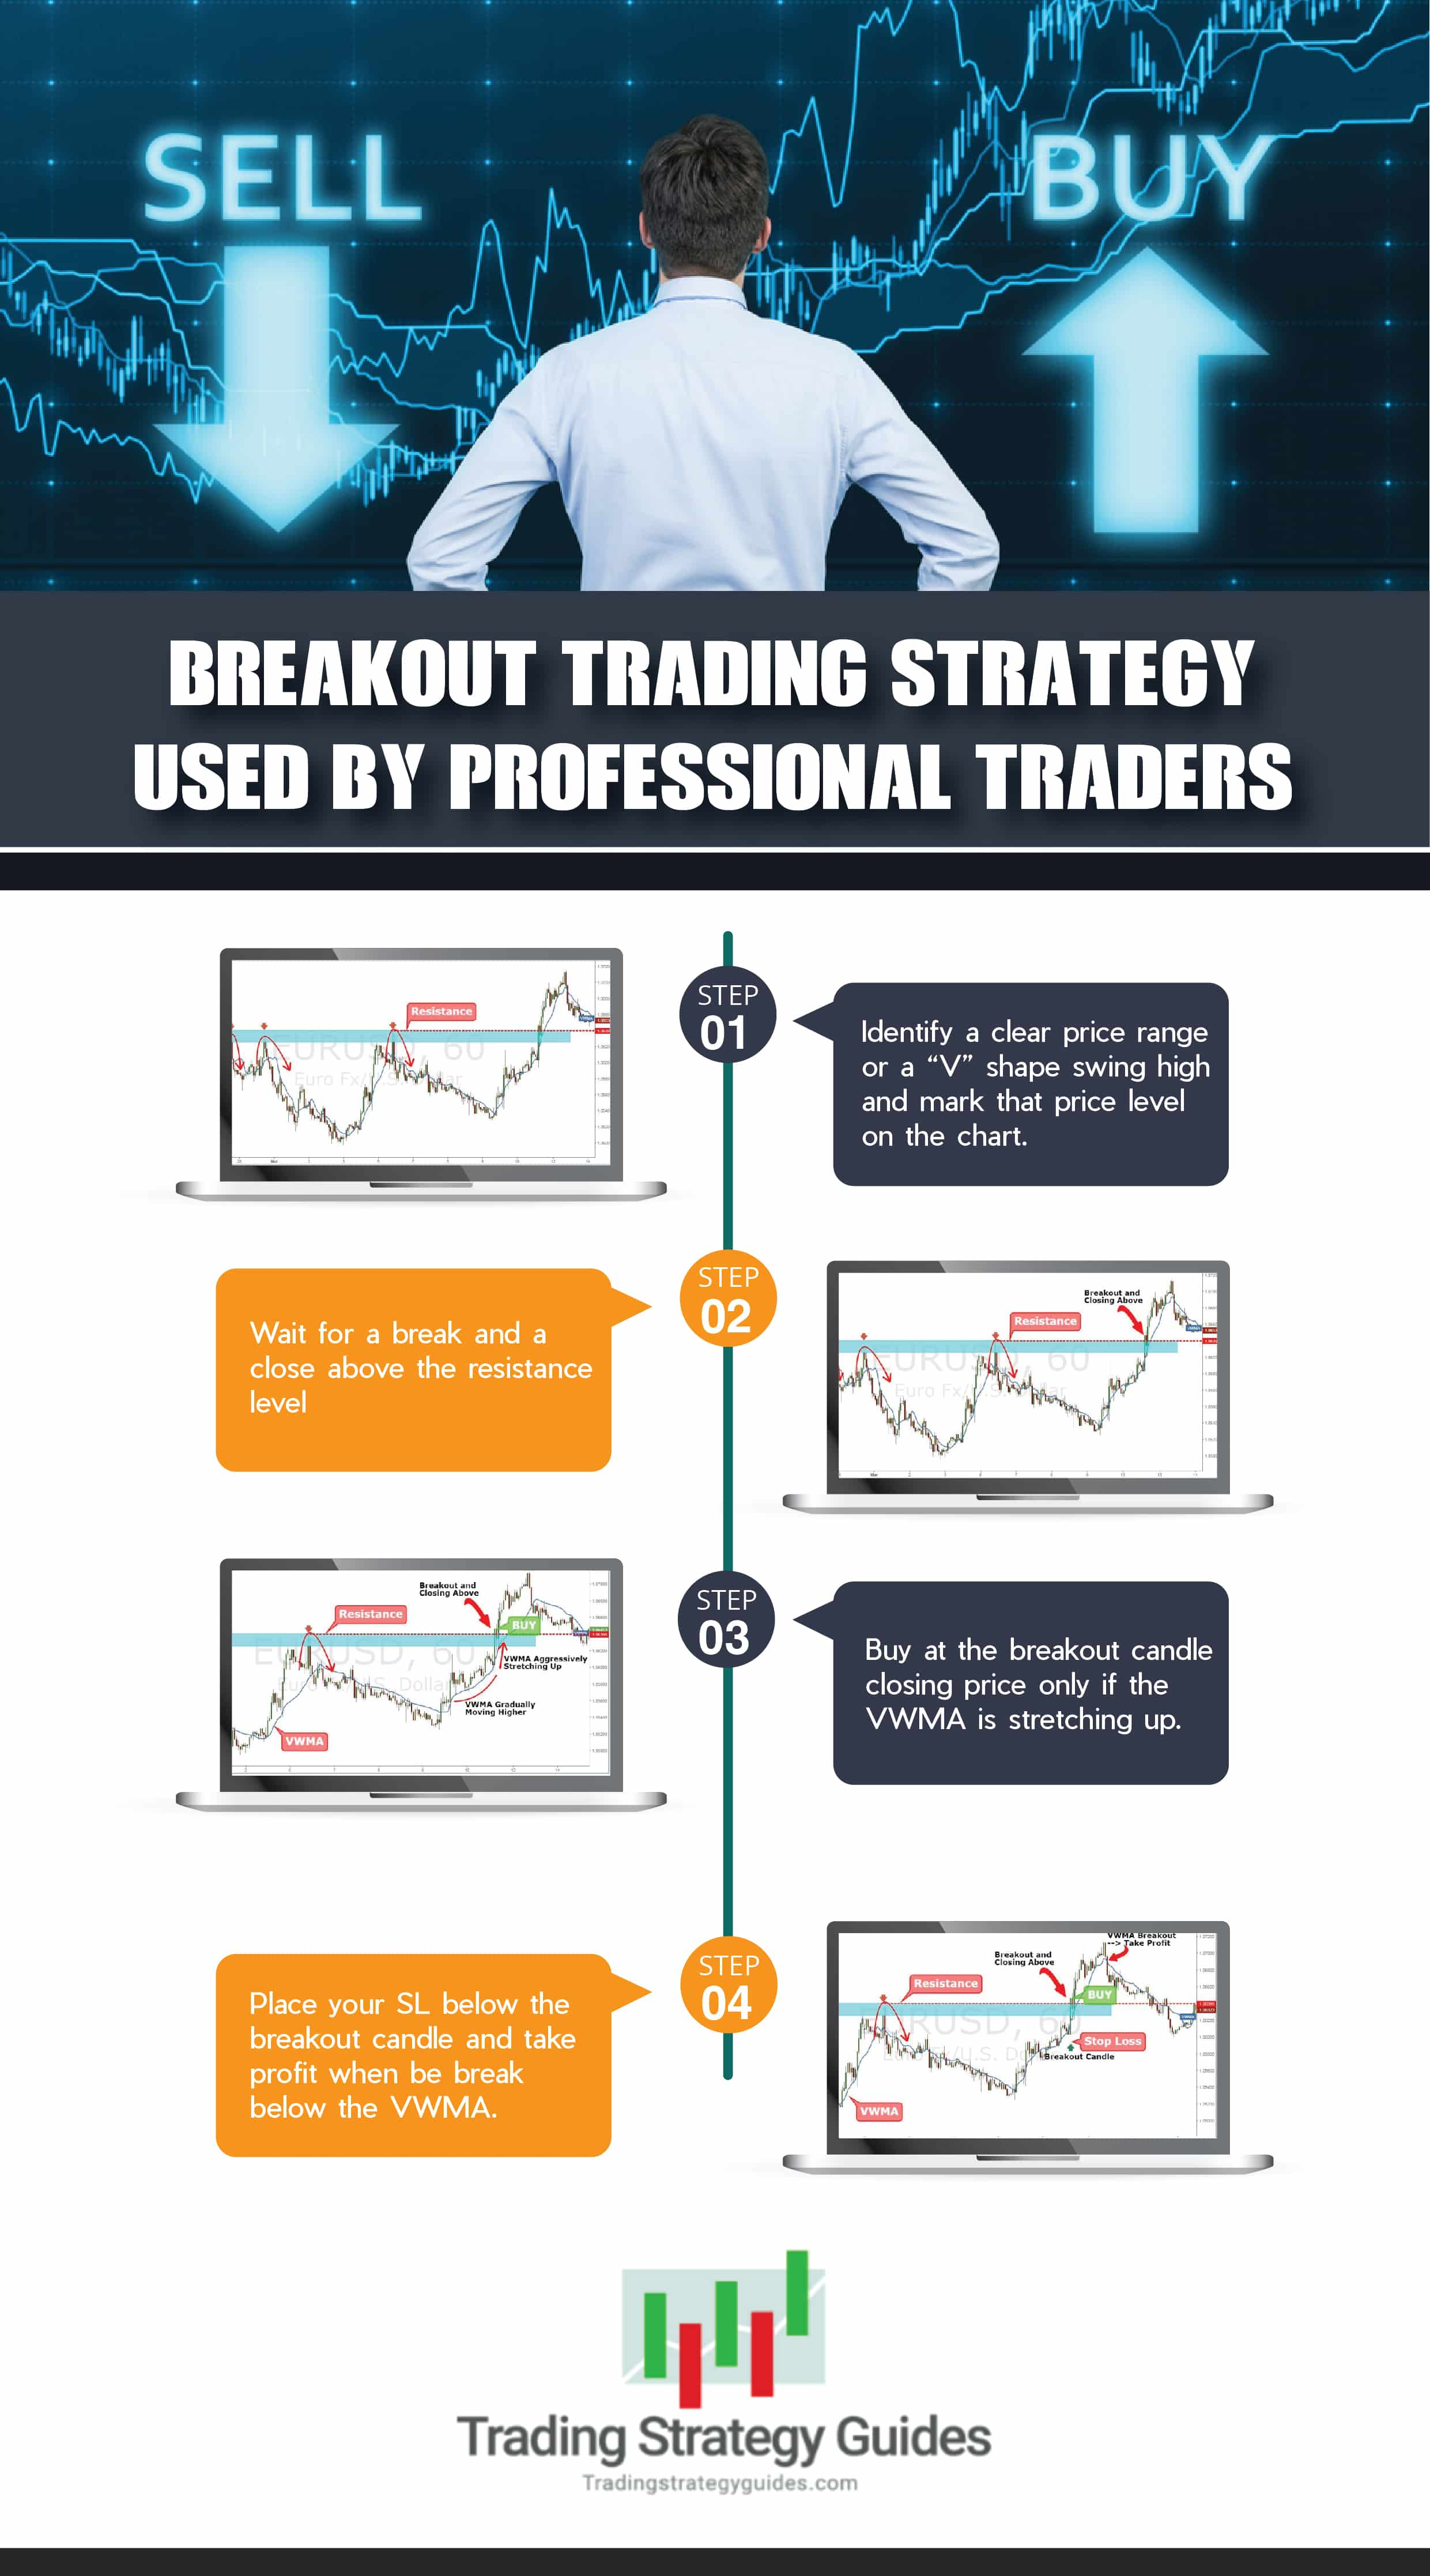 Breakout Trading Strategy Used by Professional Traders